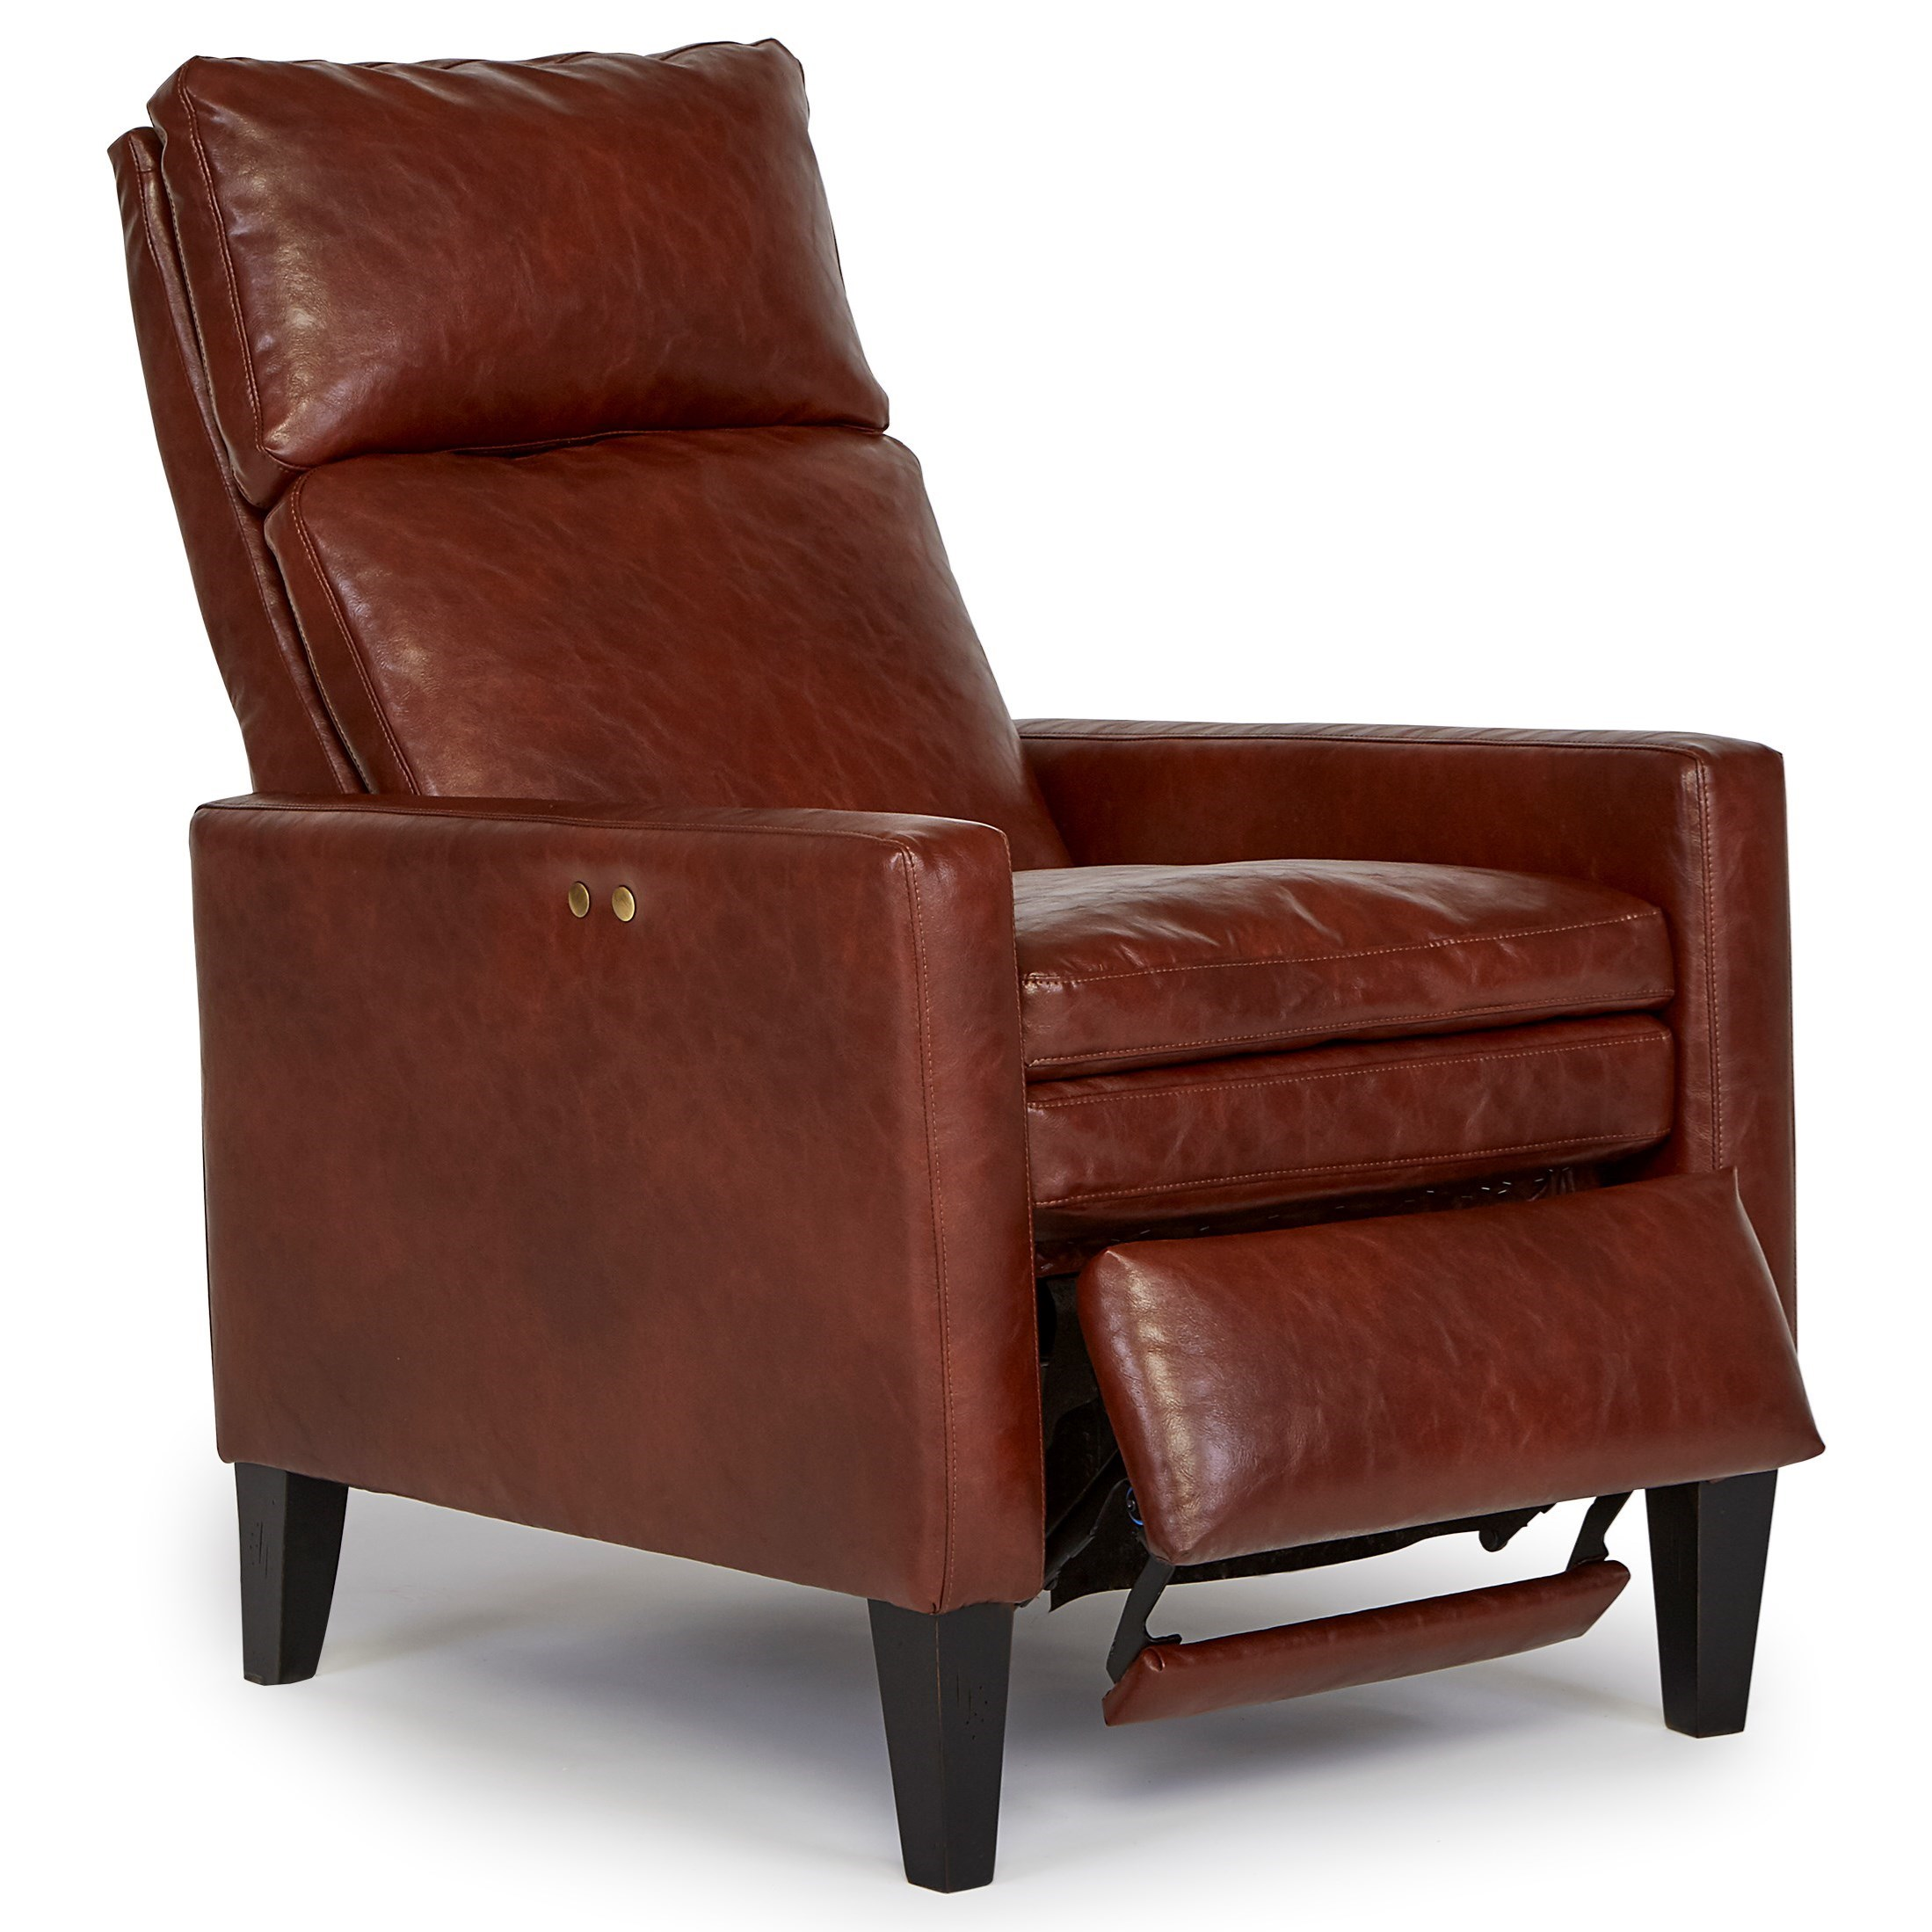 Best home furnishings pushback recliners myles high leg for Best home furnishings